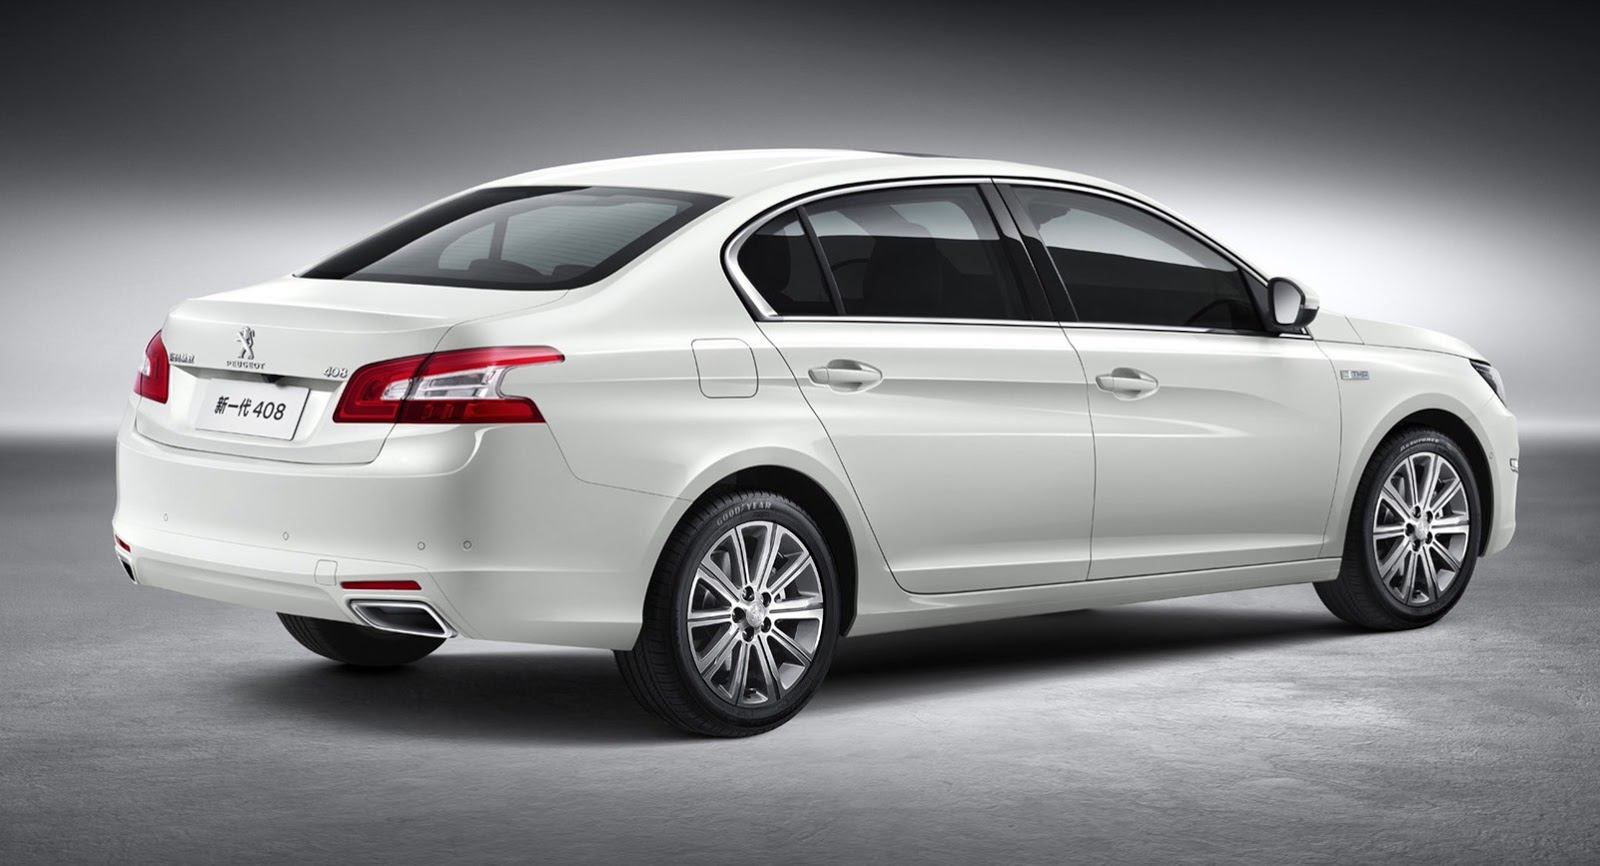 Peugeot 301 2016 Interior >> All-New Peugeot 408 Sedan Revealed in China, Is a Longer 308 With a Boot - autoevolution